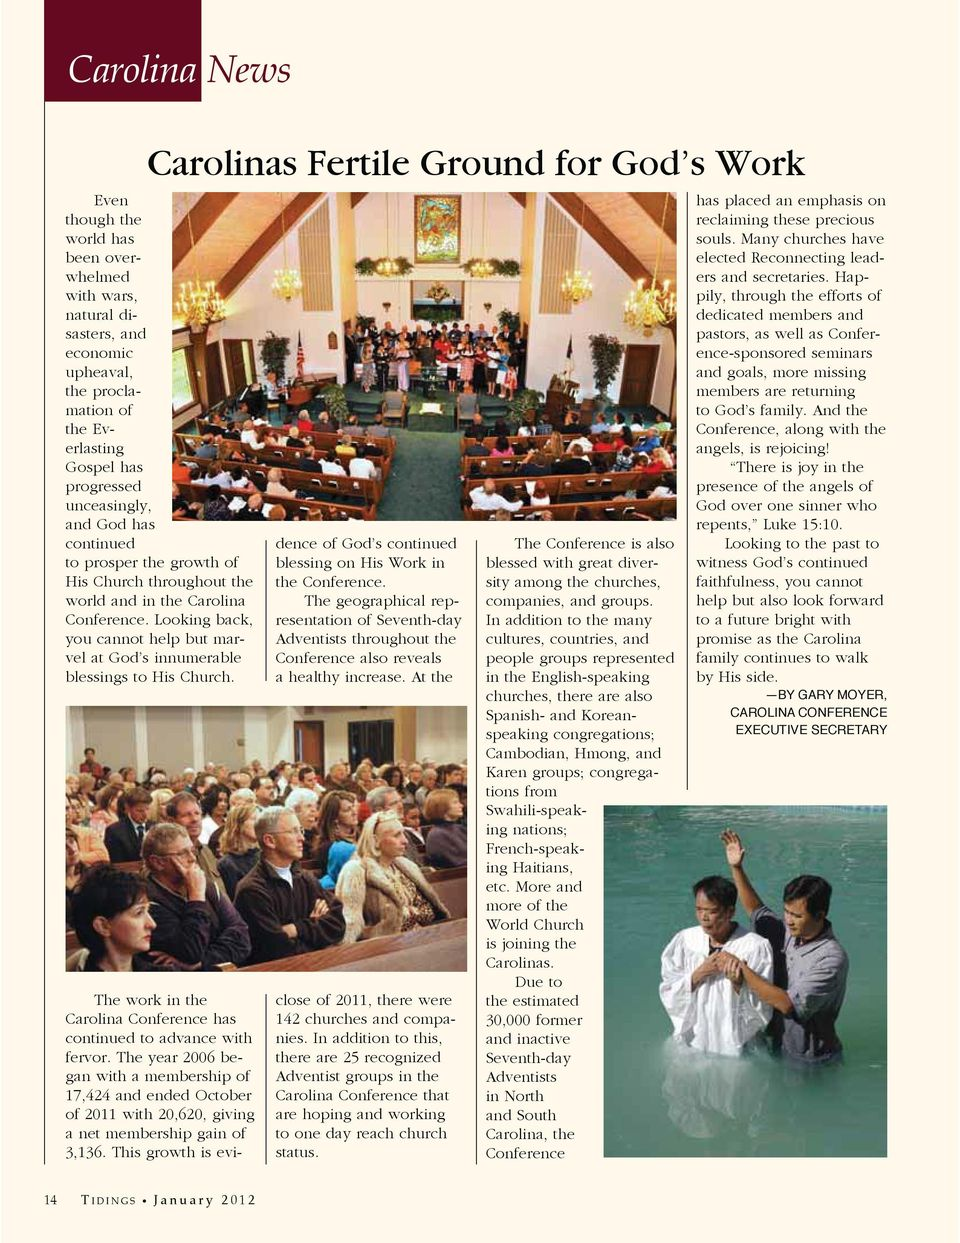 Looking back, you cannot help but marvel at God s innumerable blessings to His Church. The work in the Carolina Conference has continued to advance with fervor.